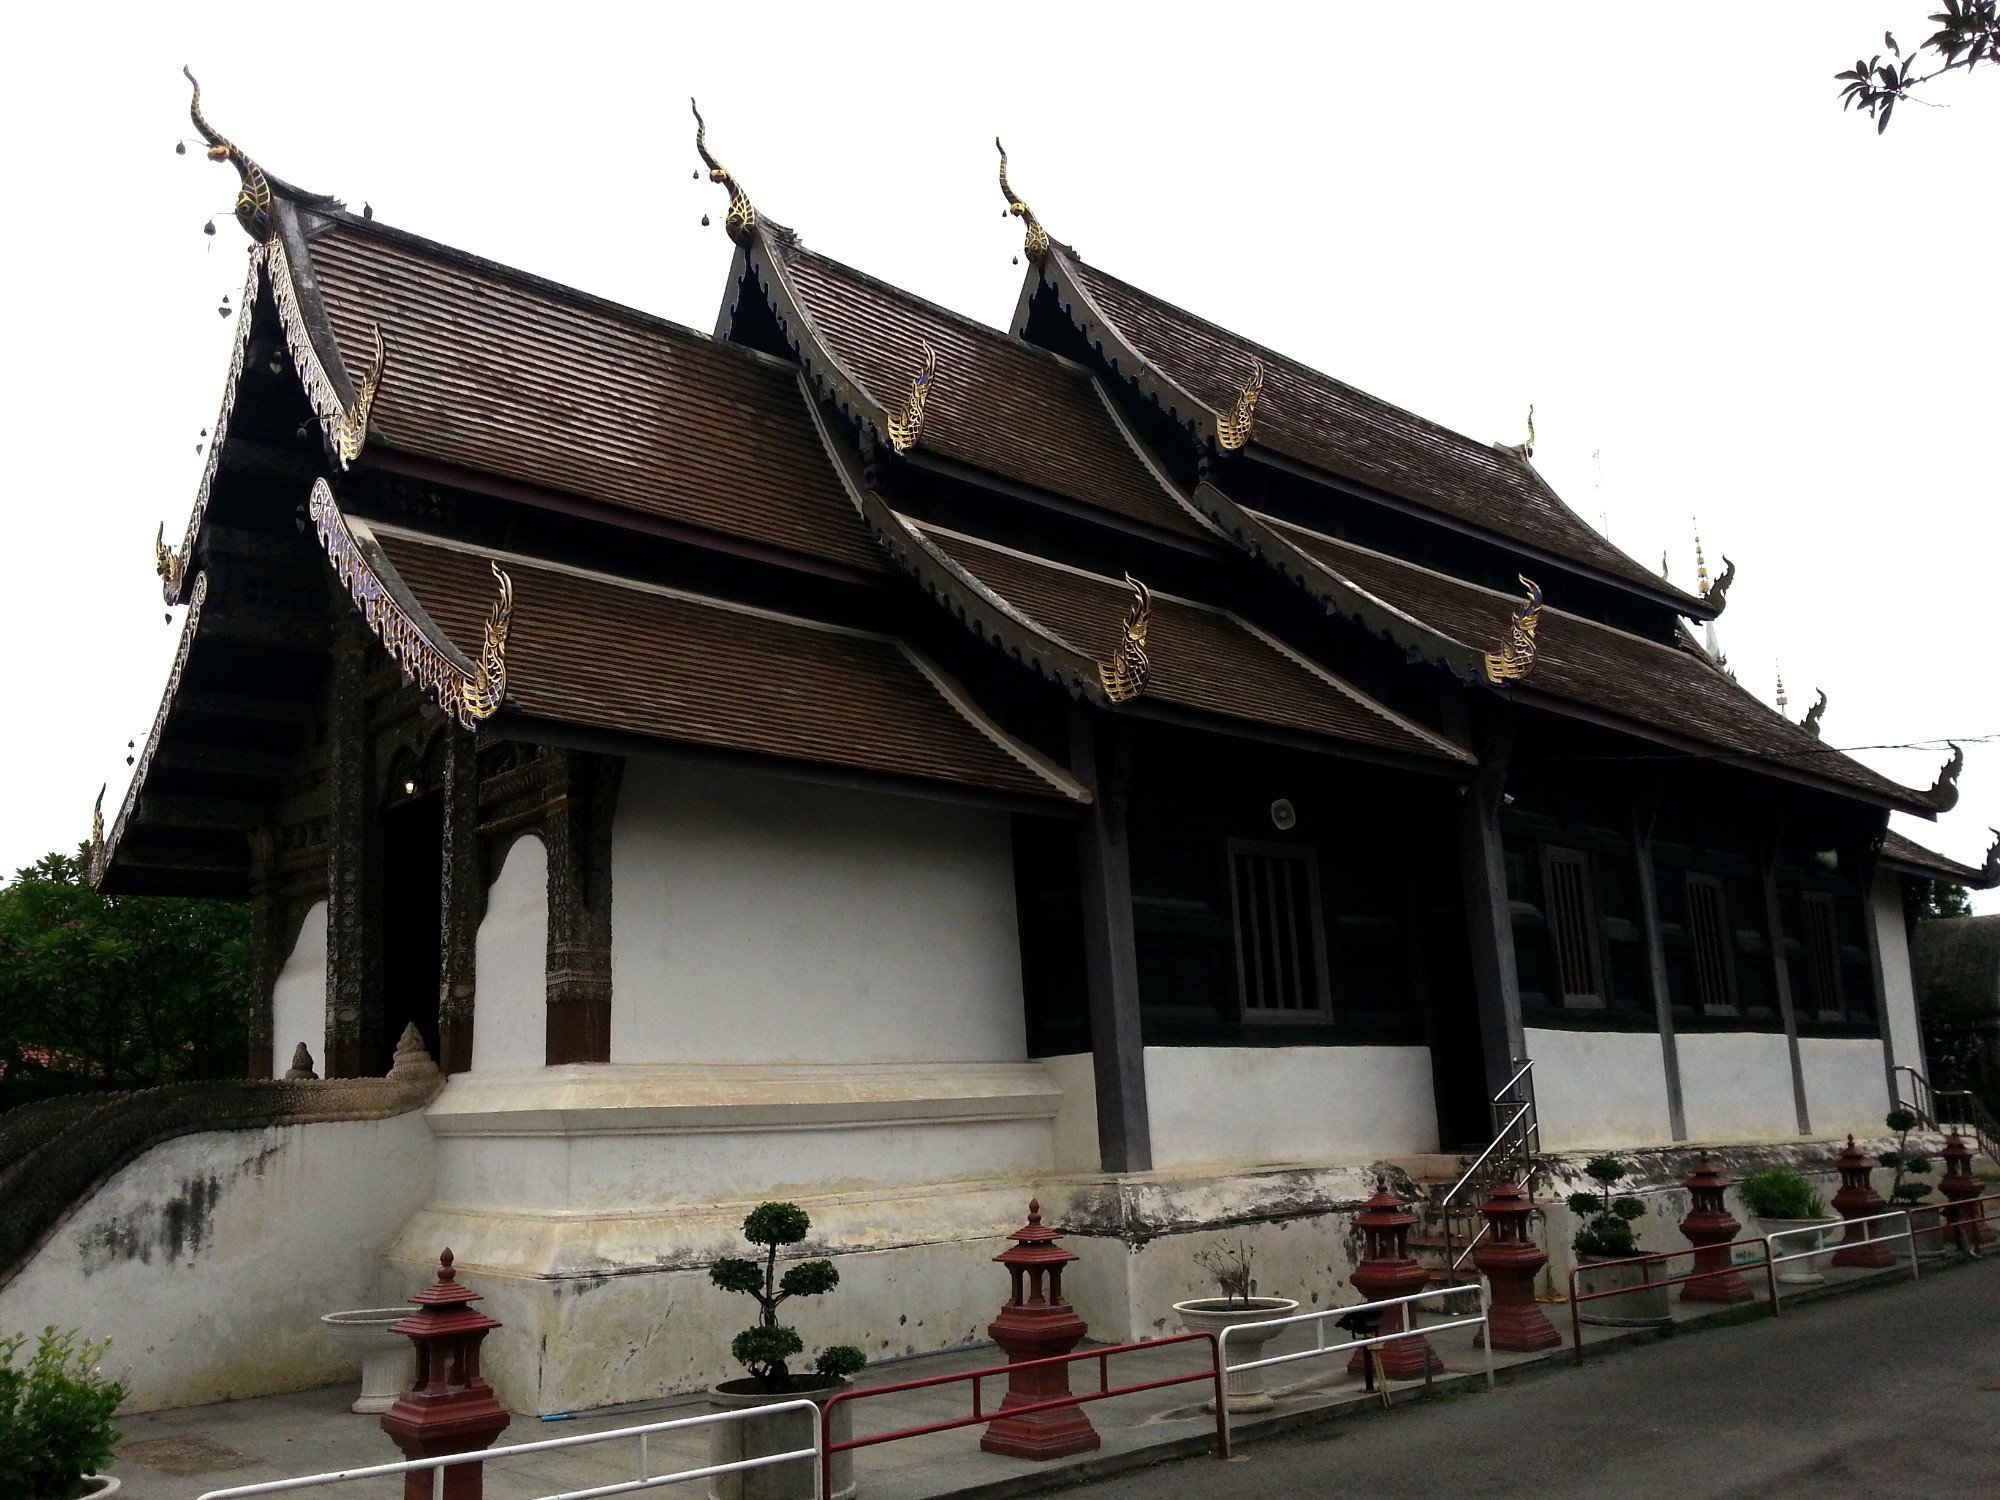 Assembly hall at Wat Prasat